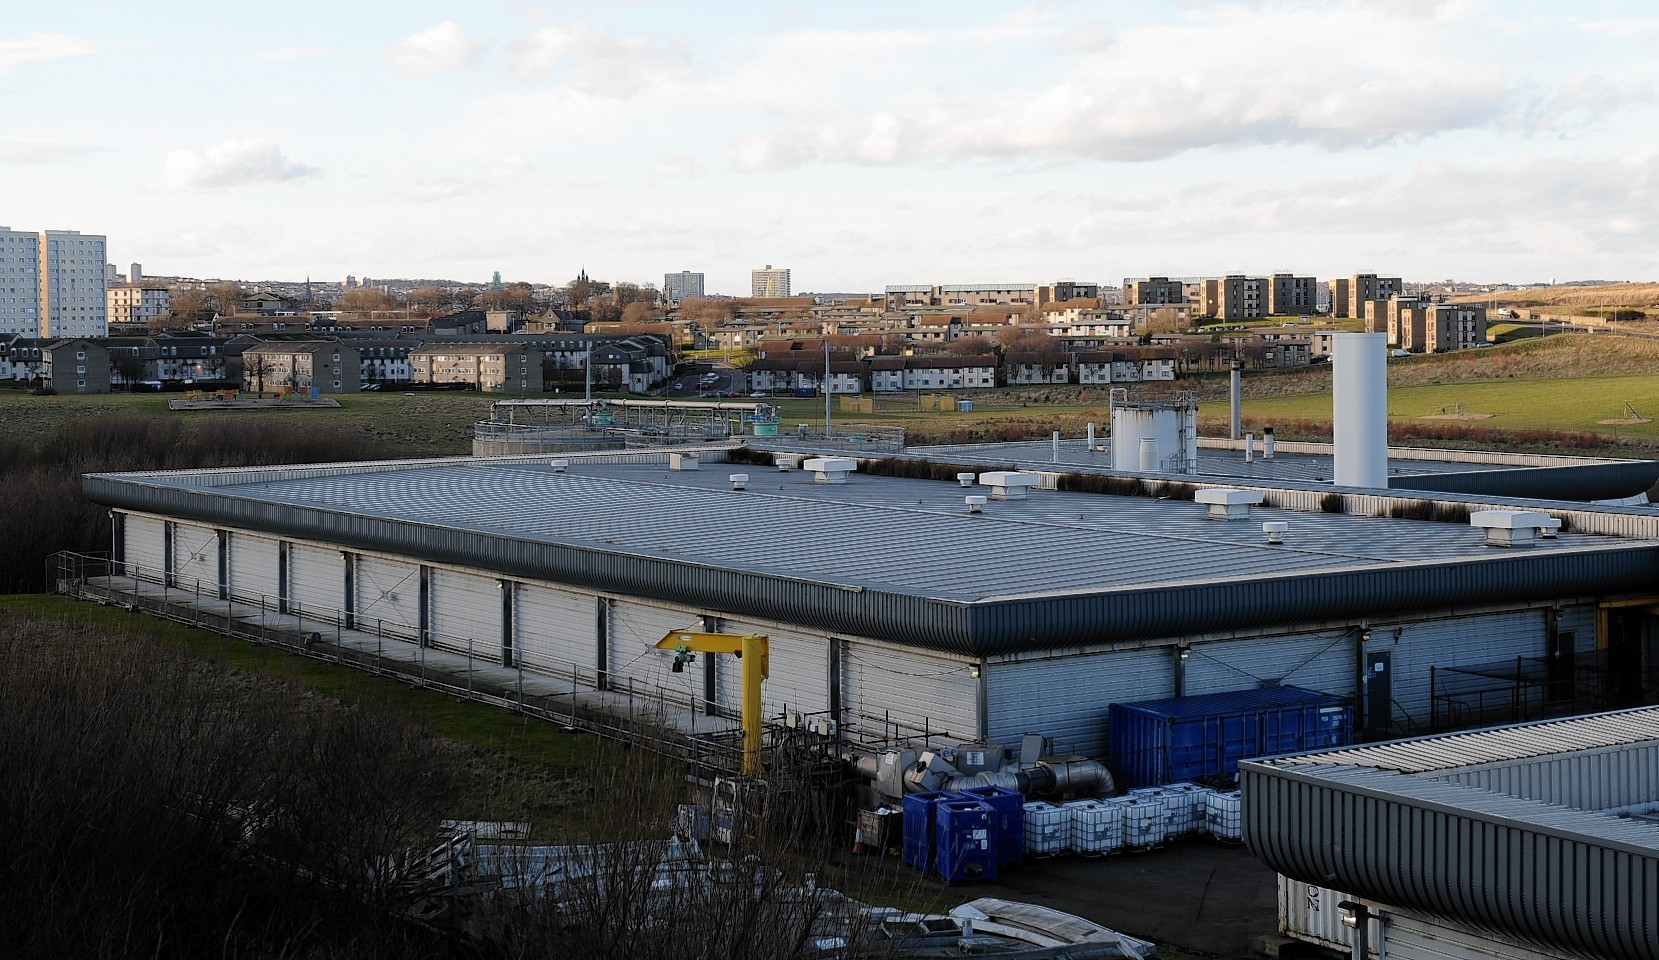 Plans have been lodged to build a boiler house at Nigg Waste Water Plant.